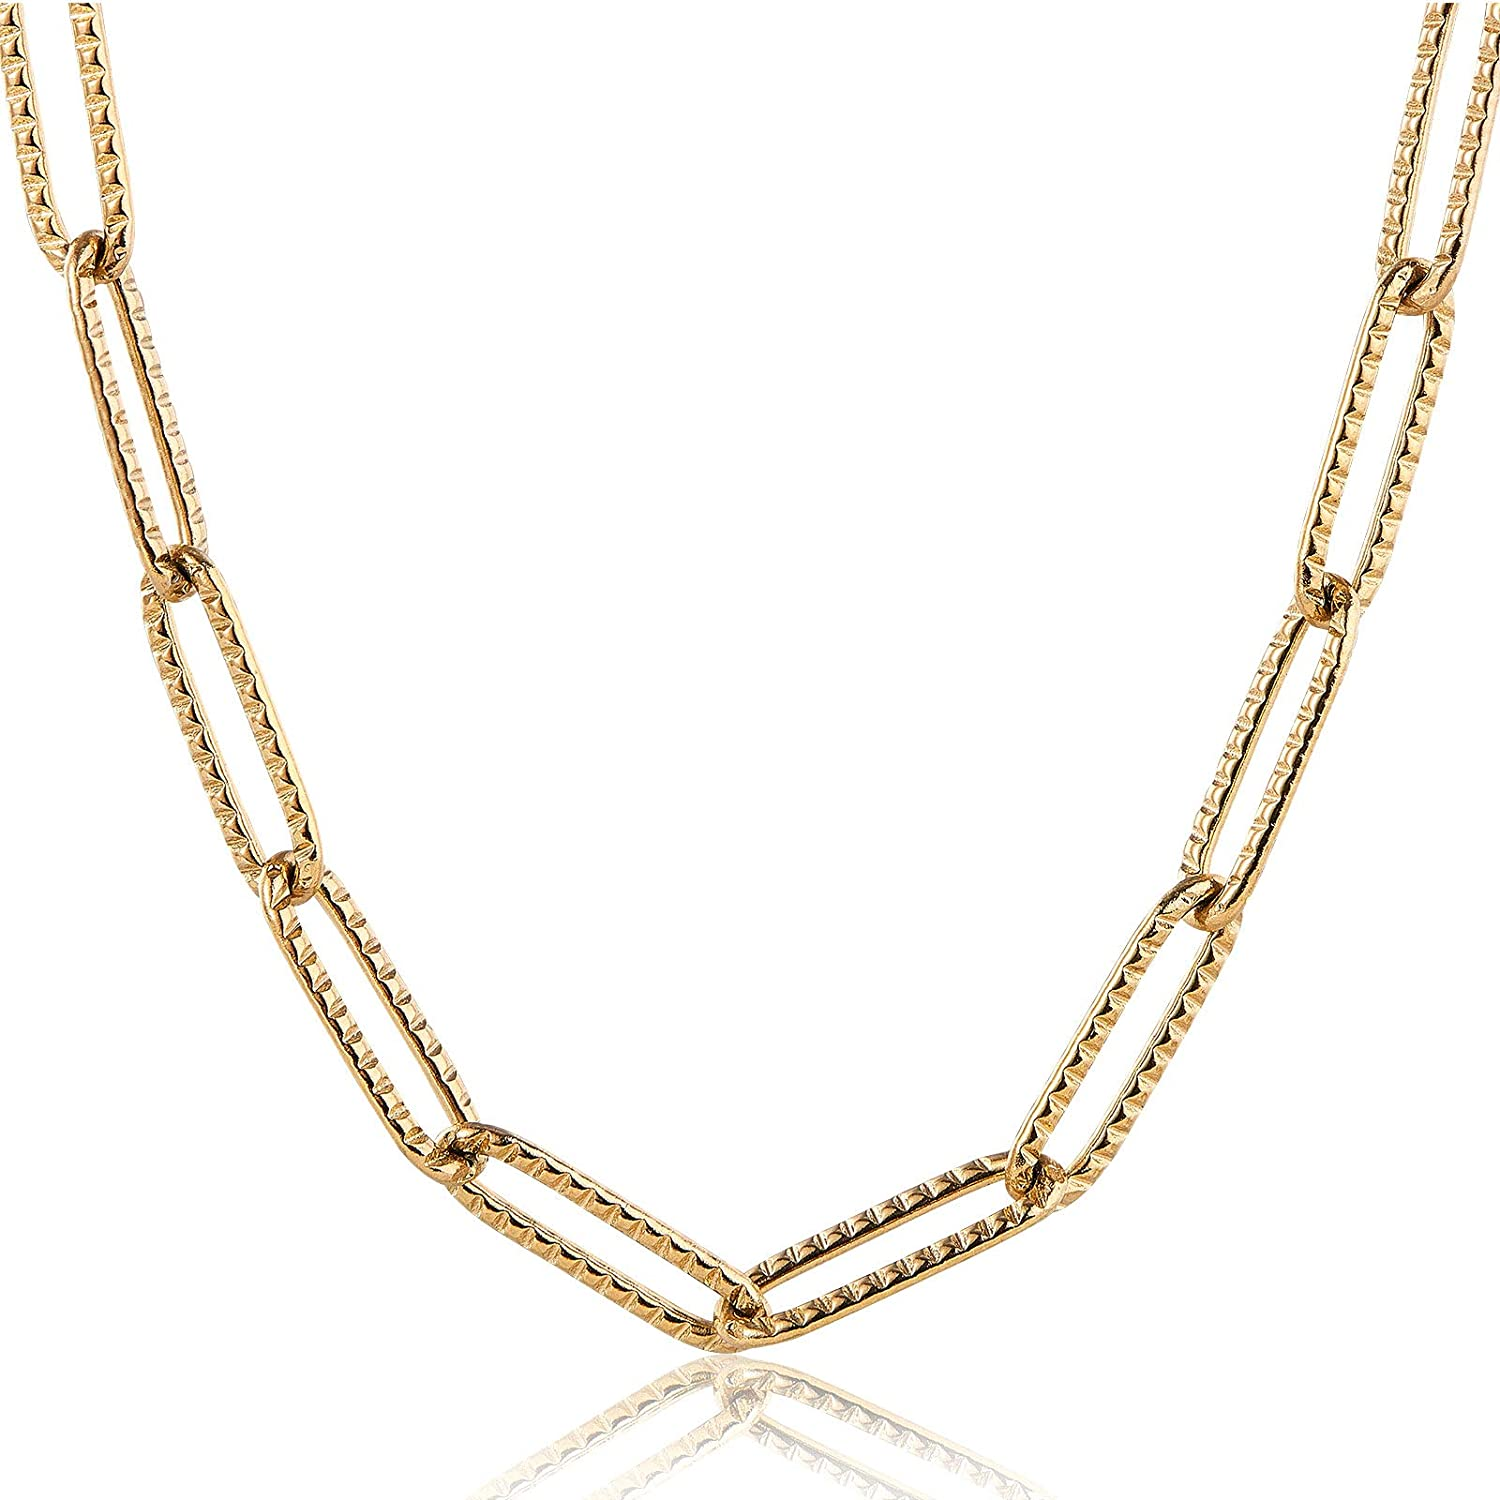 UR URLIFEHALL 2m Real 18K Gold Long-Lasting Plated Handmade Brass Cubic Zirconia Chains for Bracelet Necklace Jewellry Making